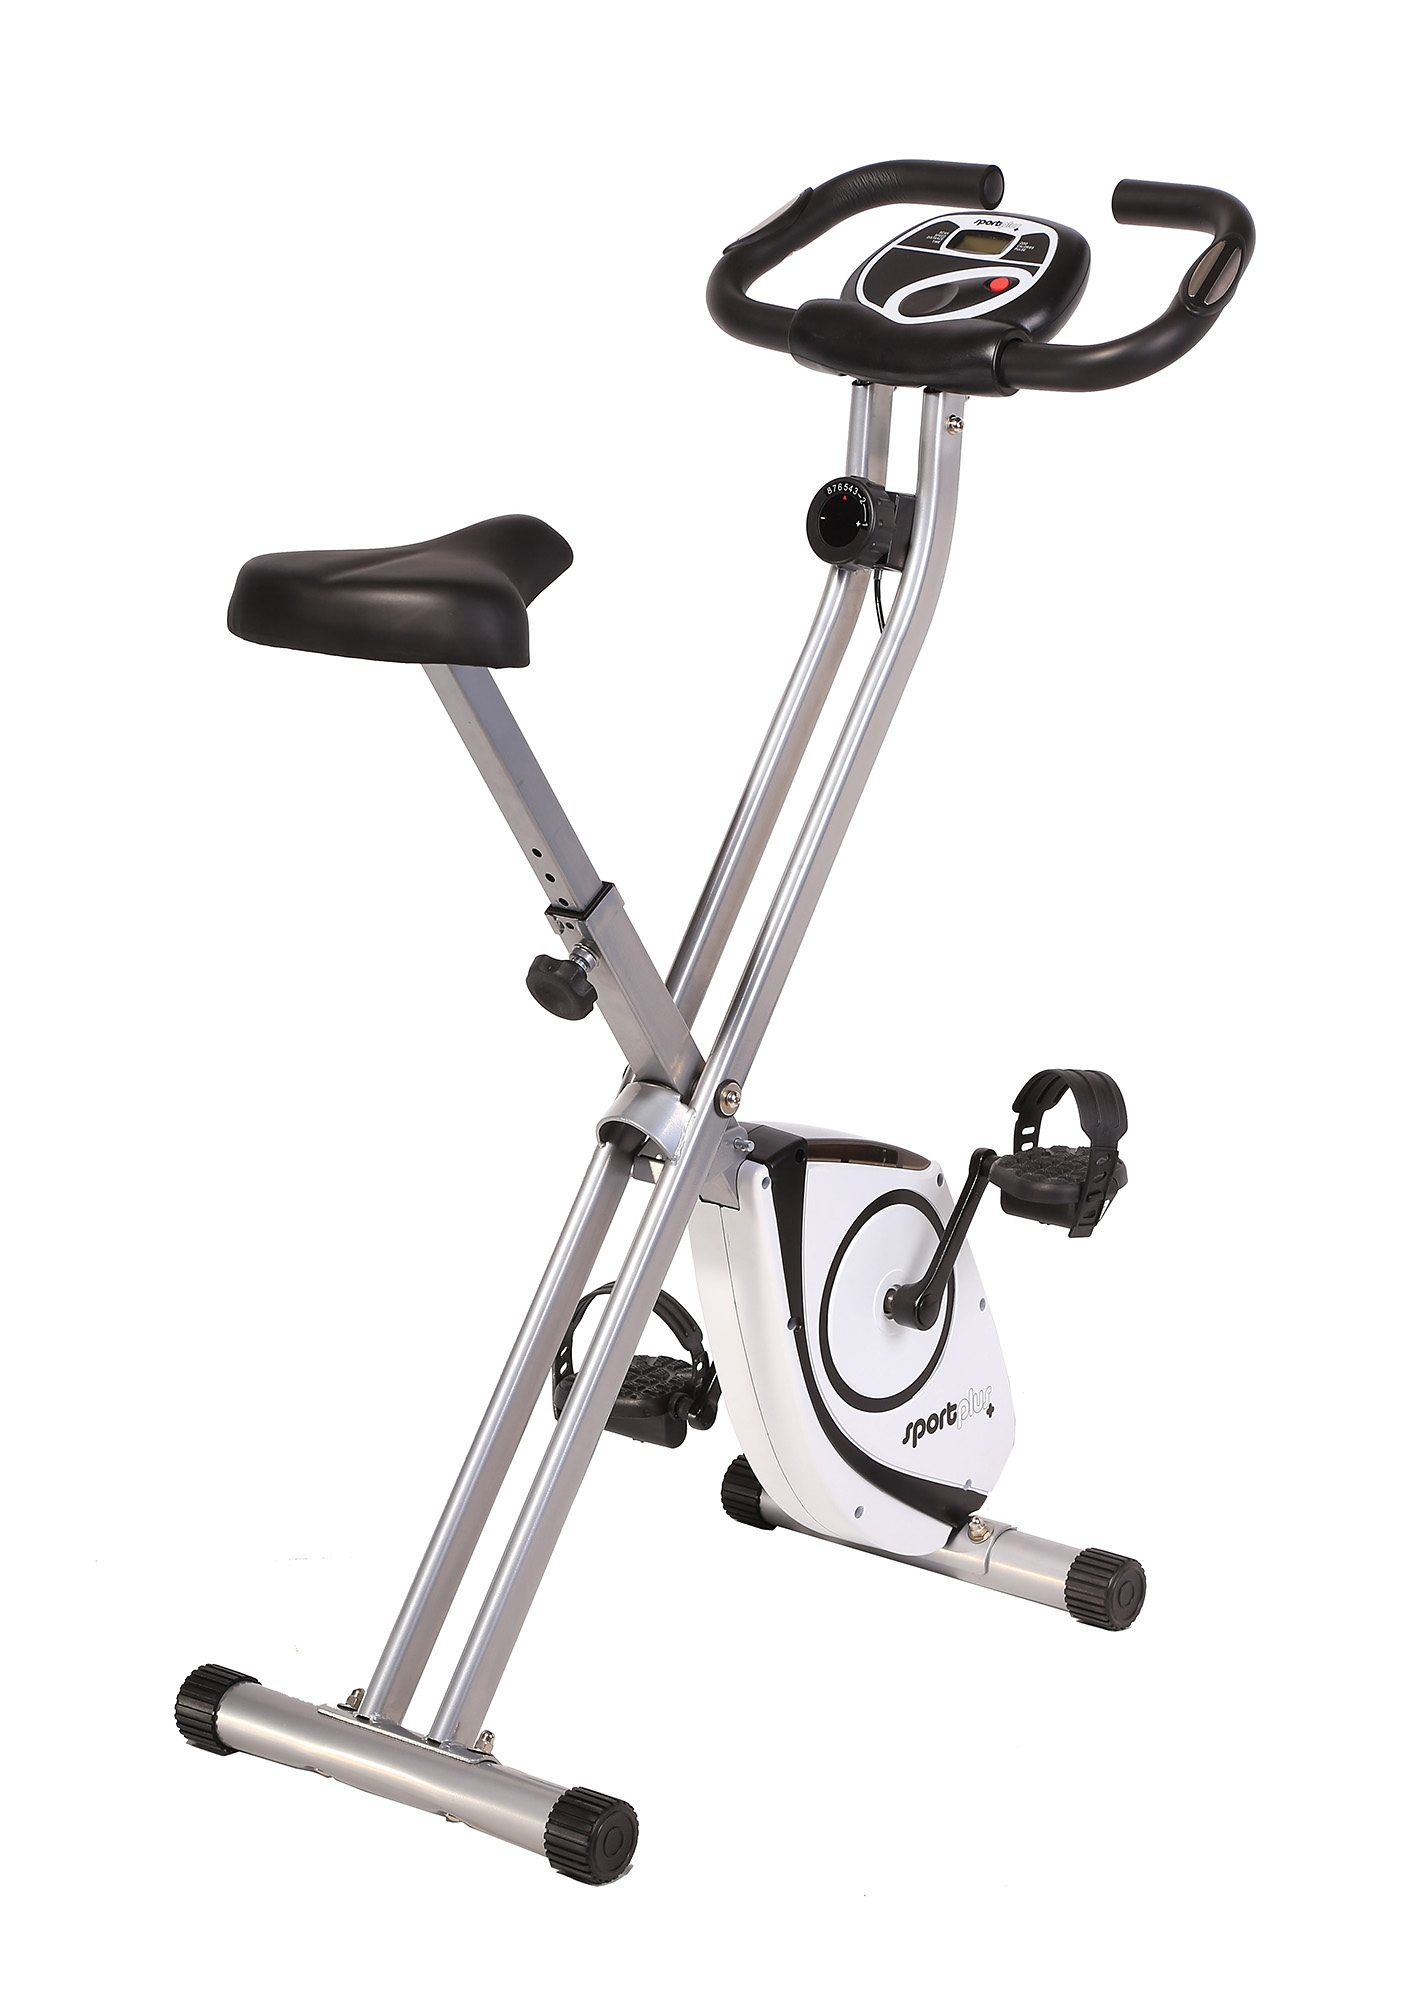 Heimtrainer, »X-Bike SP-HT-1002«, Sportplus